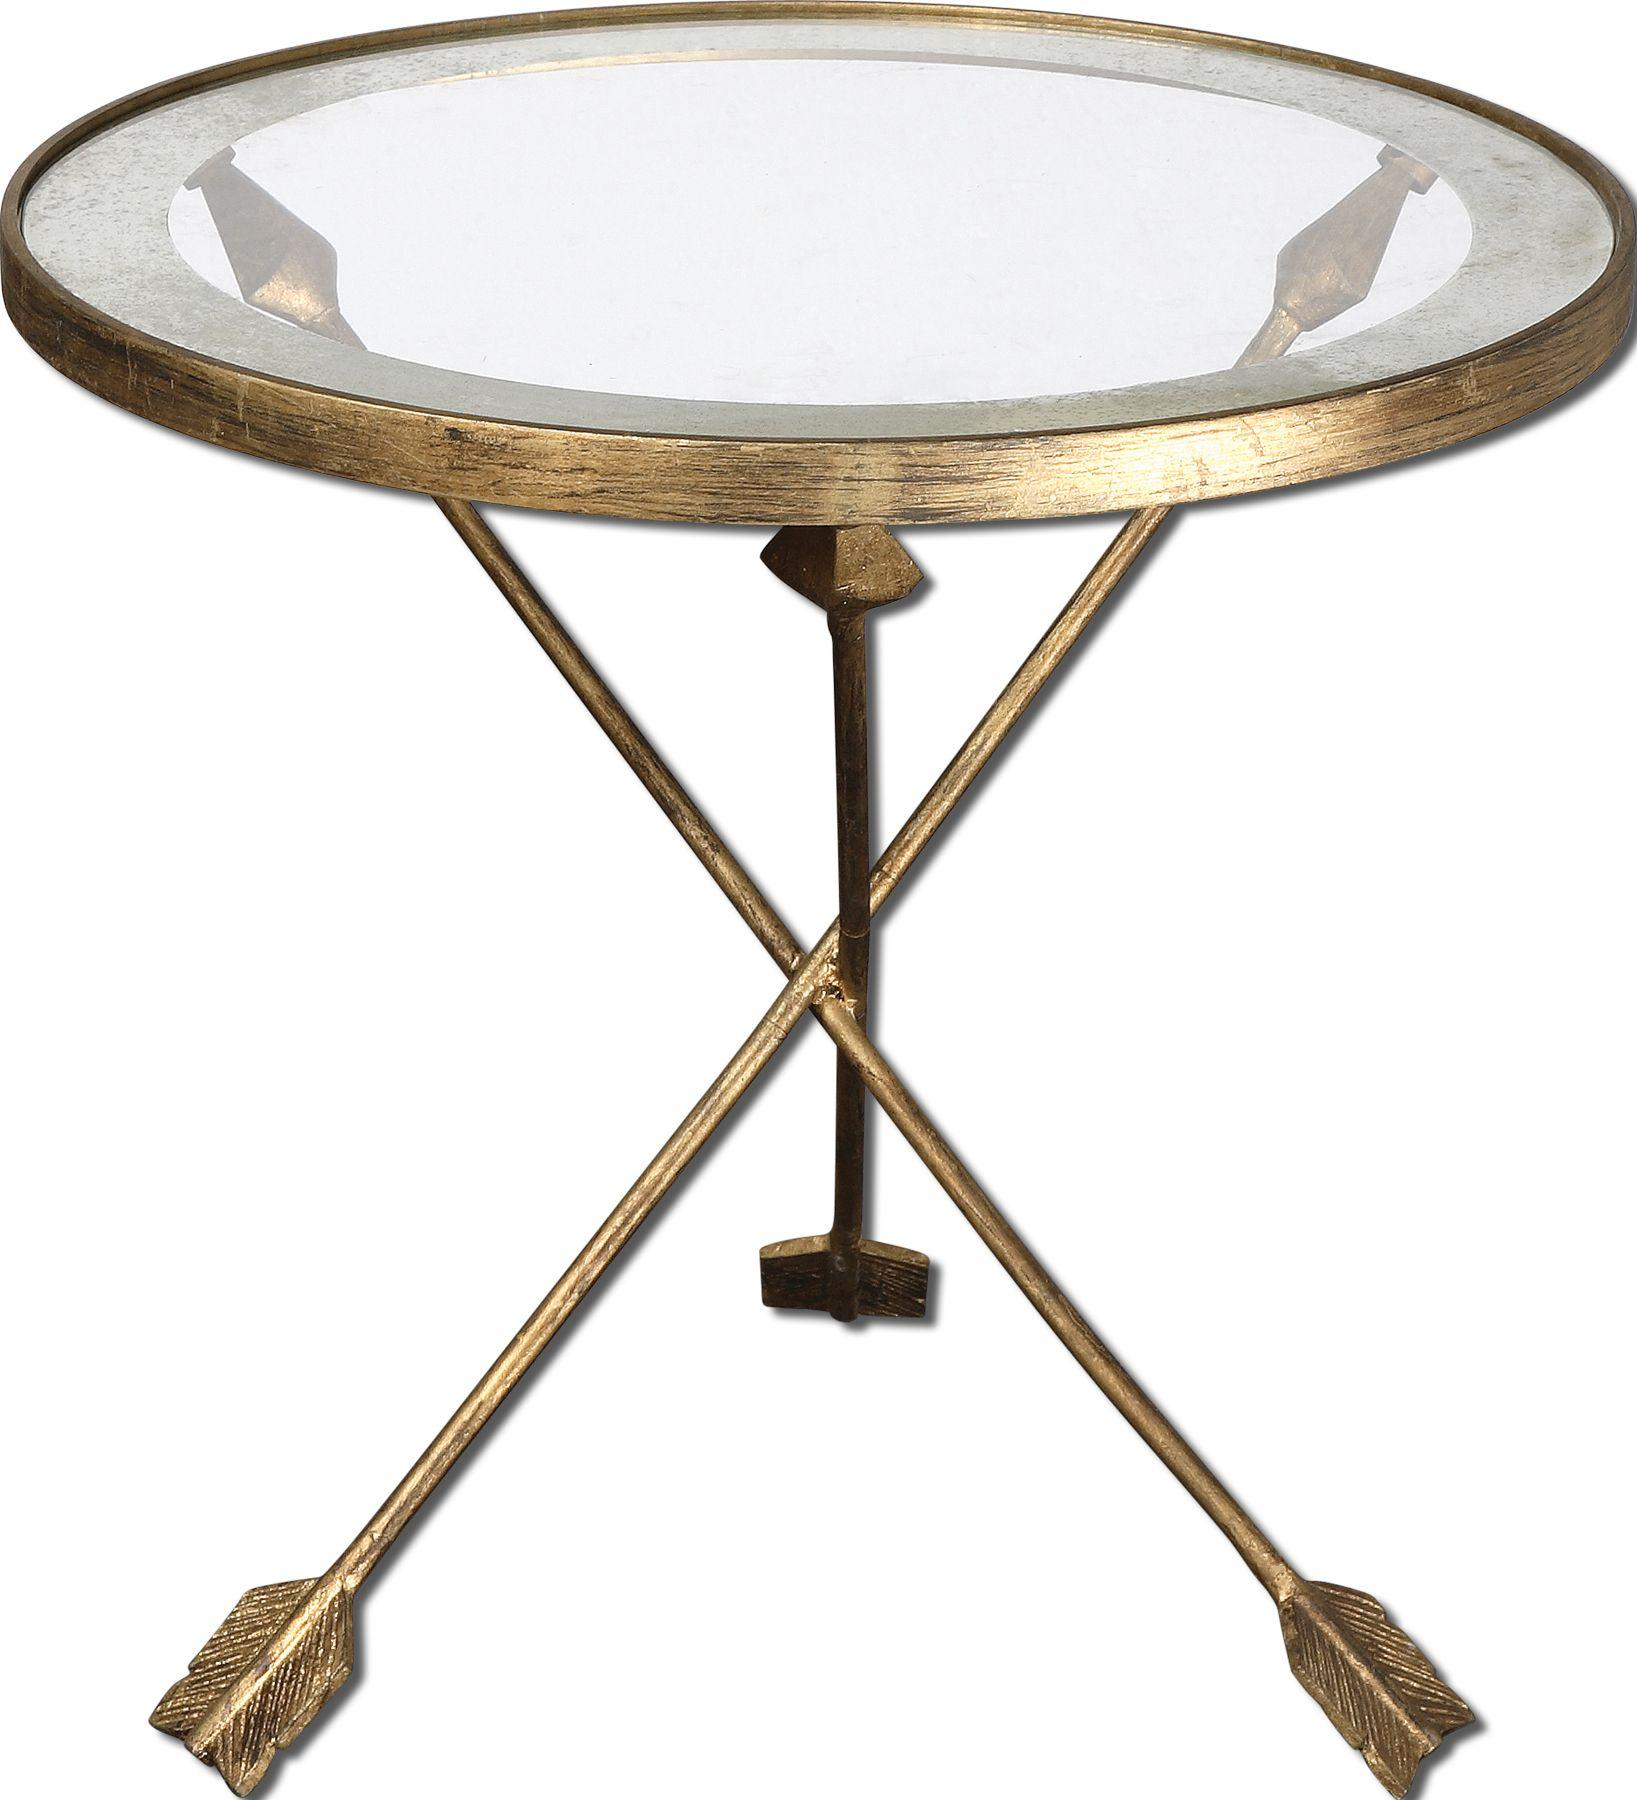 uttermost accent furniture occasional tables aero products color side round table small counter height sets white glass lamp vintage tier large square patio umbrella pottery barn